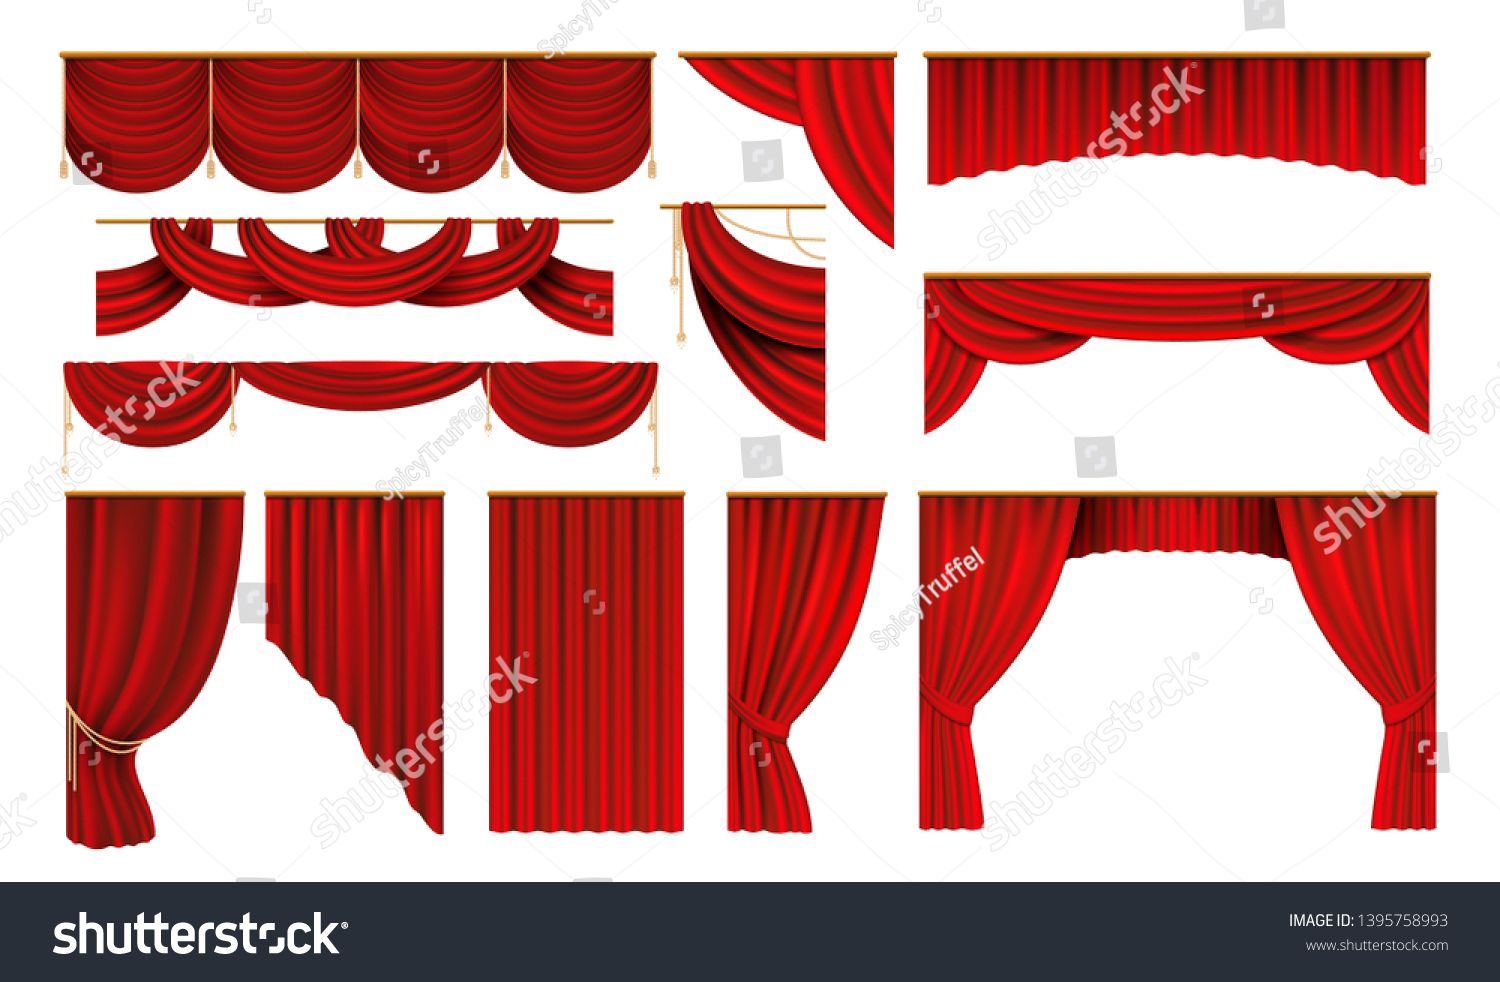 Realistic Red Curtains Cinema And Theater Stage Borders 3d Elegant Backdrop Folding Drapery Vector Movie And Opera Red Curtains Art Deco Logo Theatre Stage